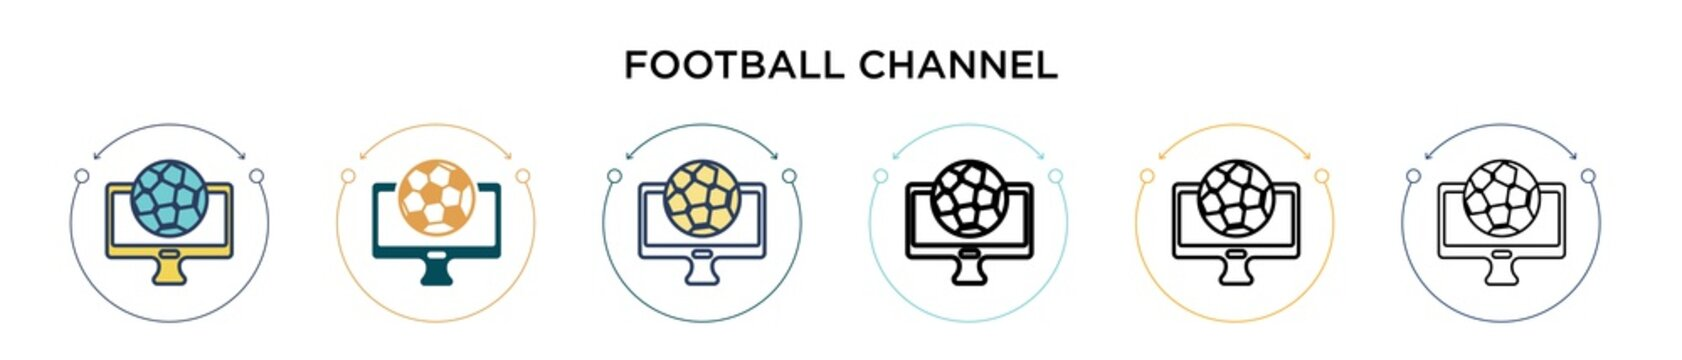 Football channel icon in filled, thin line, outline and stroke style. Vector illustration of two colored and black football channel vector icons designs can be used for mobile, ui, web